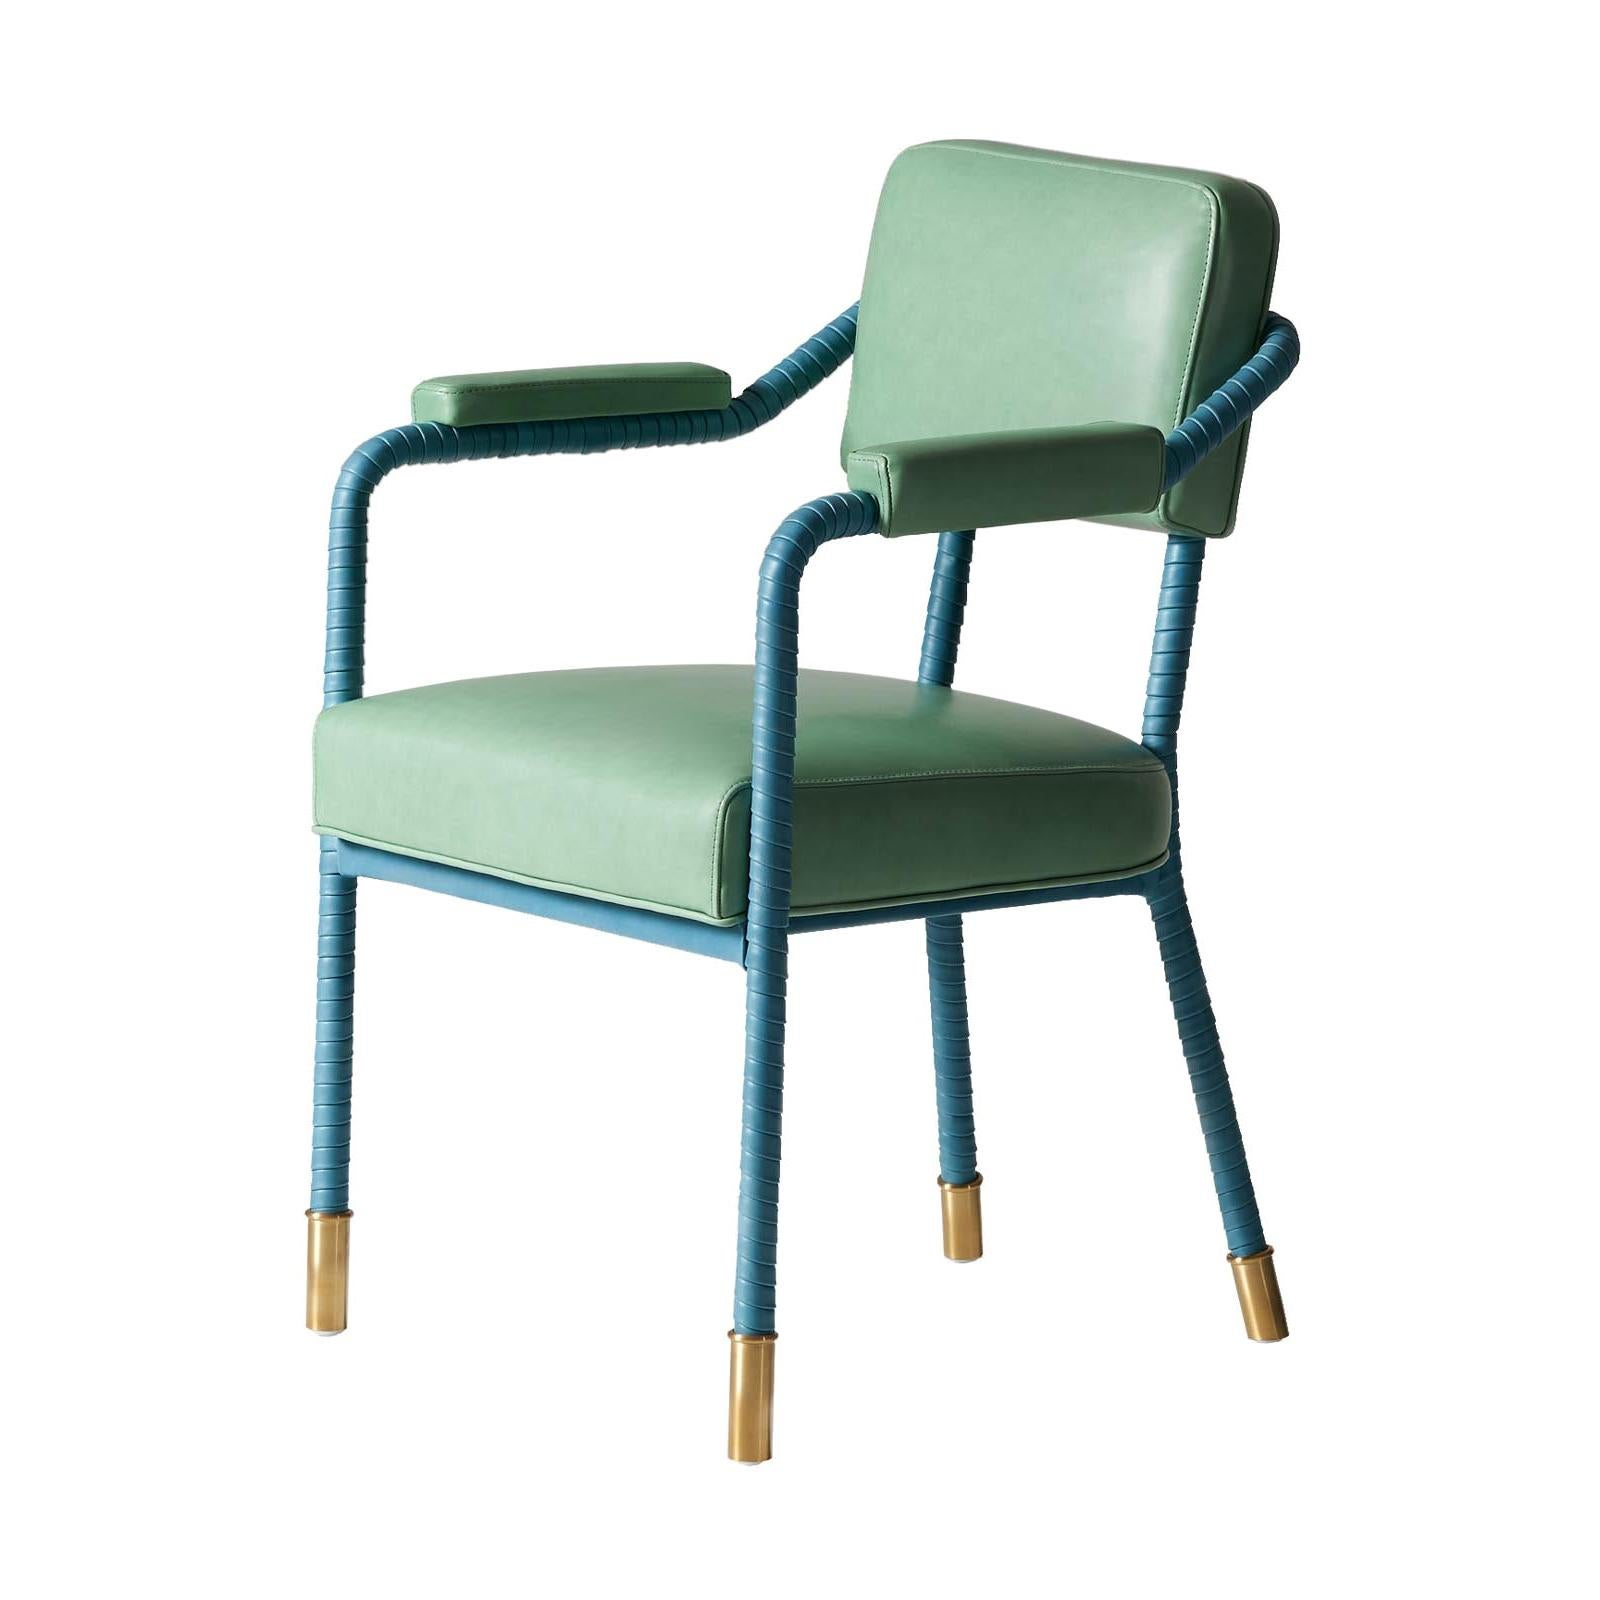 And Objects Easton Dining Chair, Fully Wrapped Upholstered Leather Fern & Teal